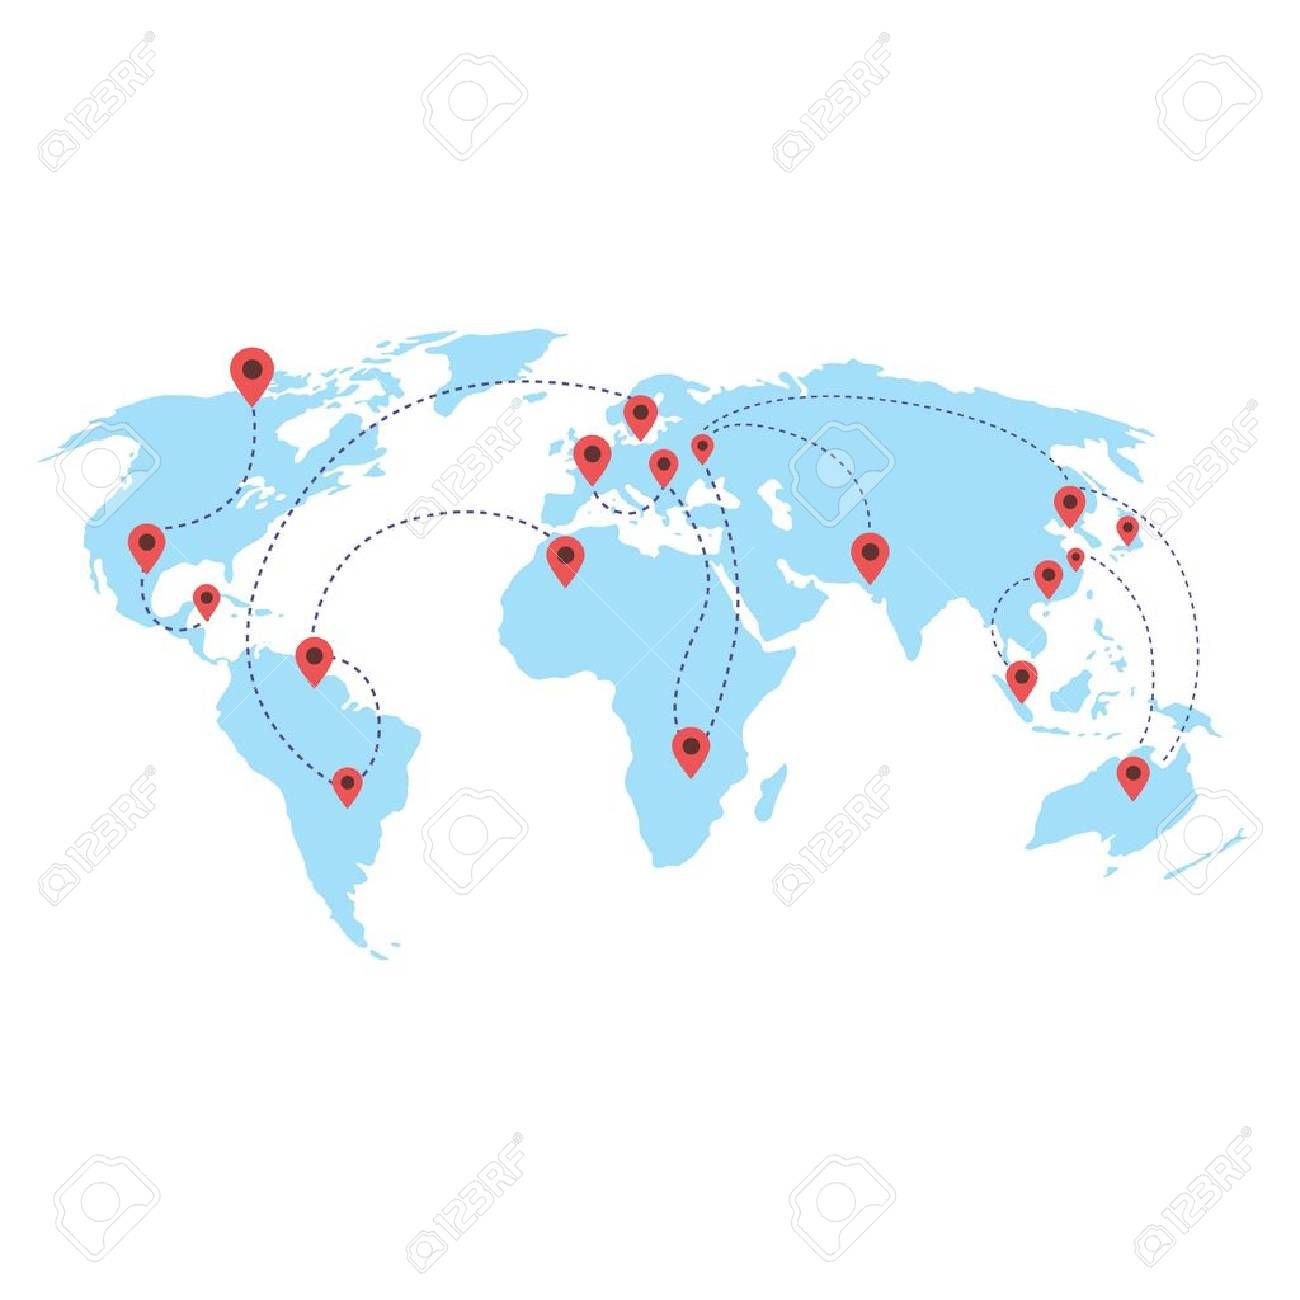 World Map With Locations Target Vector White Background Royalty Free on